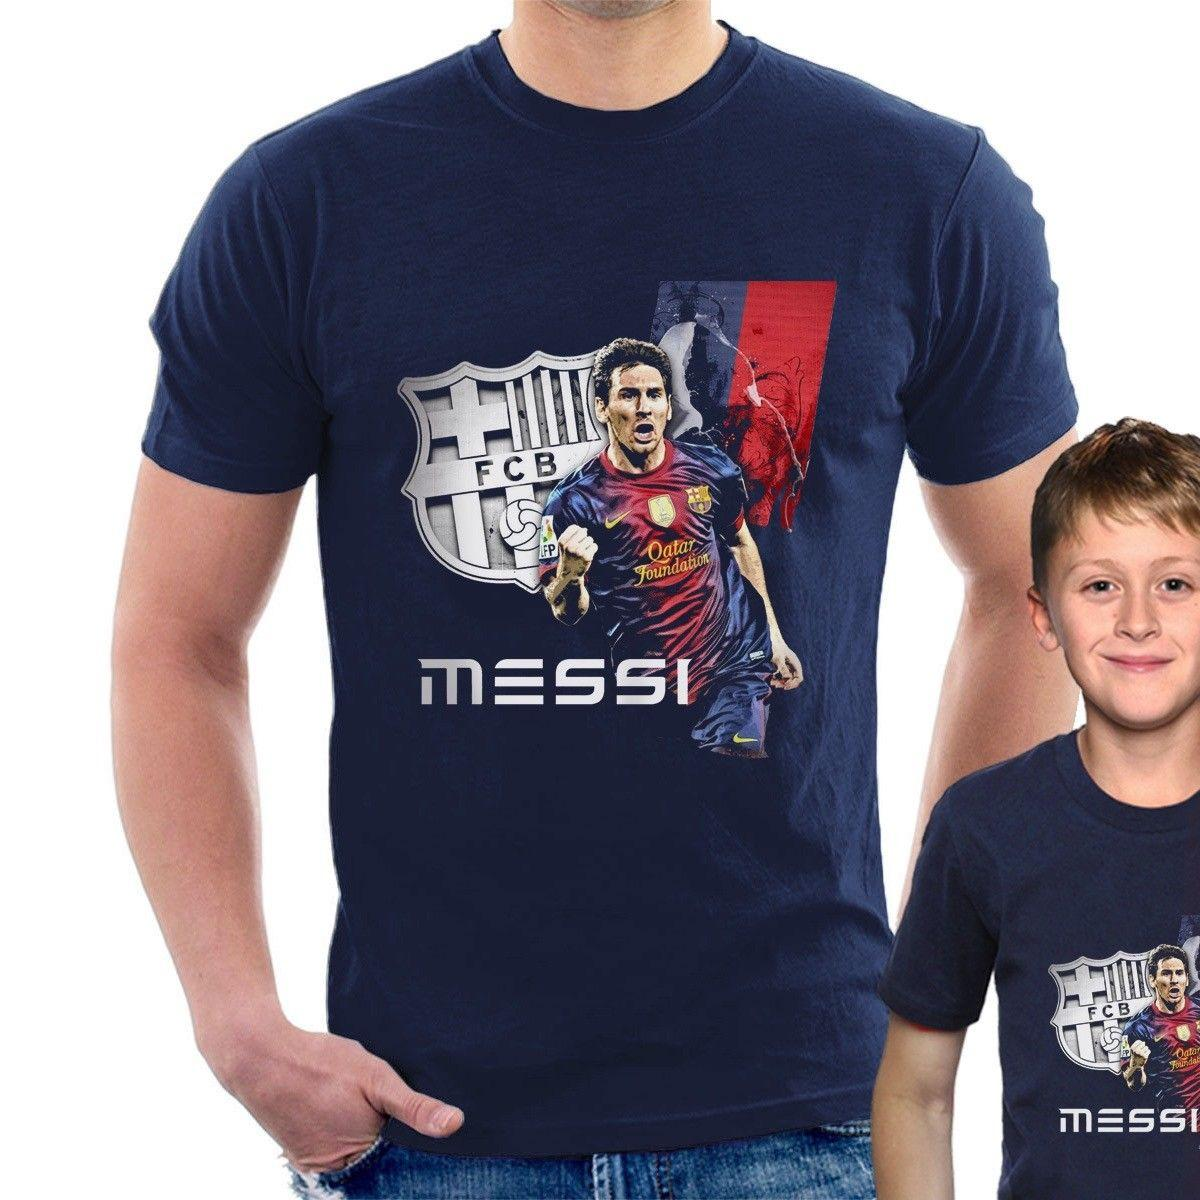 765f0efdd LIONEL MESSI T SHIRT Barcelona Argentina Adult & Kids Sizes N13 Cool Casual  Pride T Shirt Men Unisex New Really Cool Sweatshirts The Following T Shirts  From ...